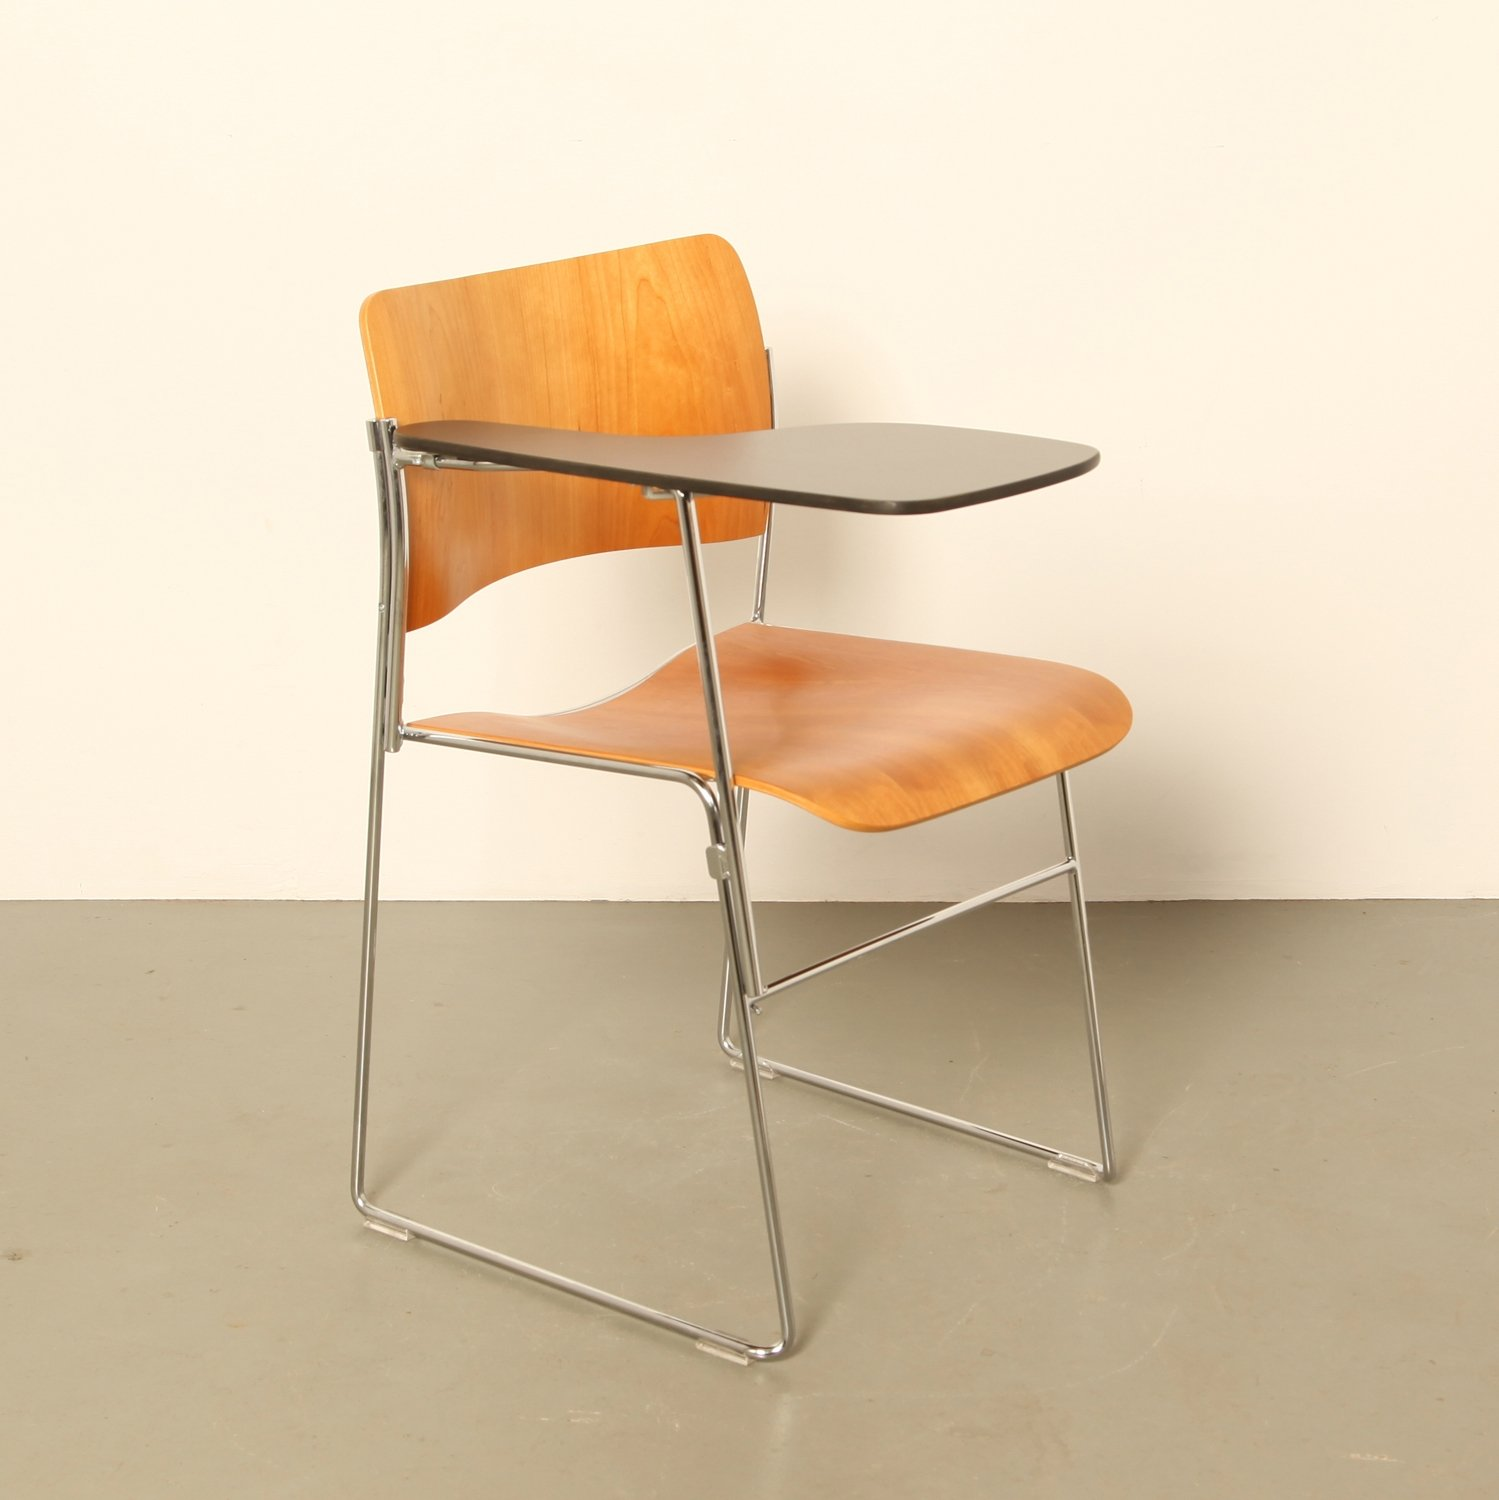 40 4 Writing Desk Chair By David Rowland For Howe 1960s